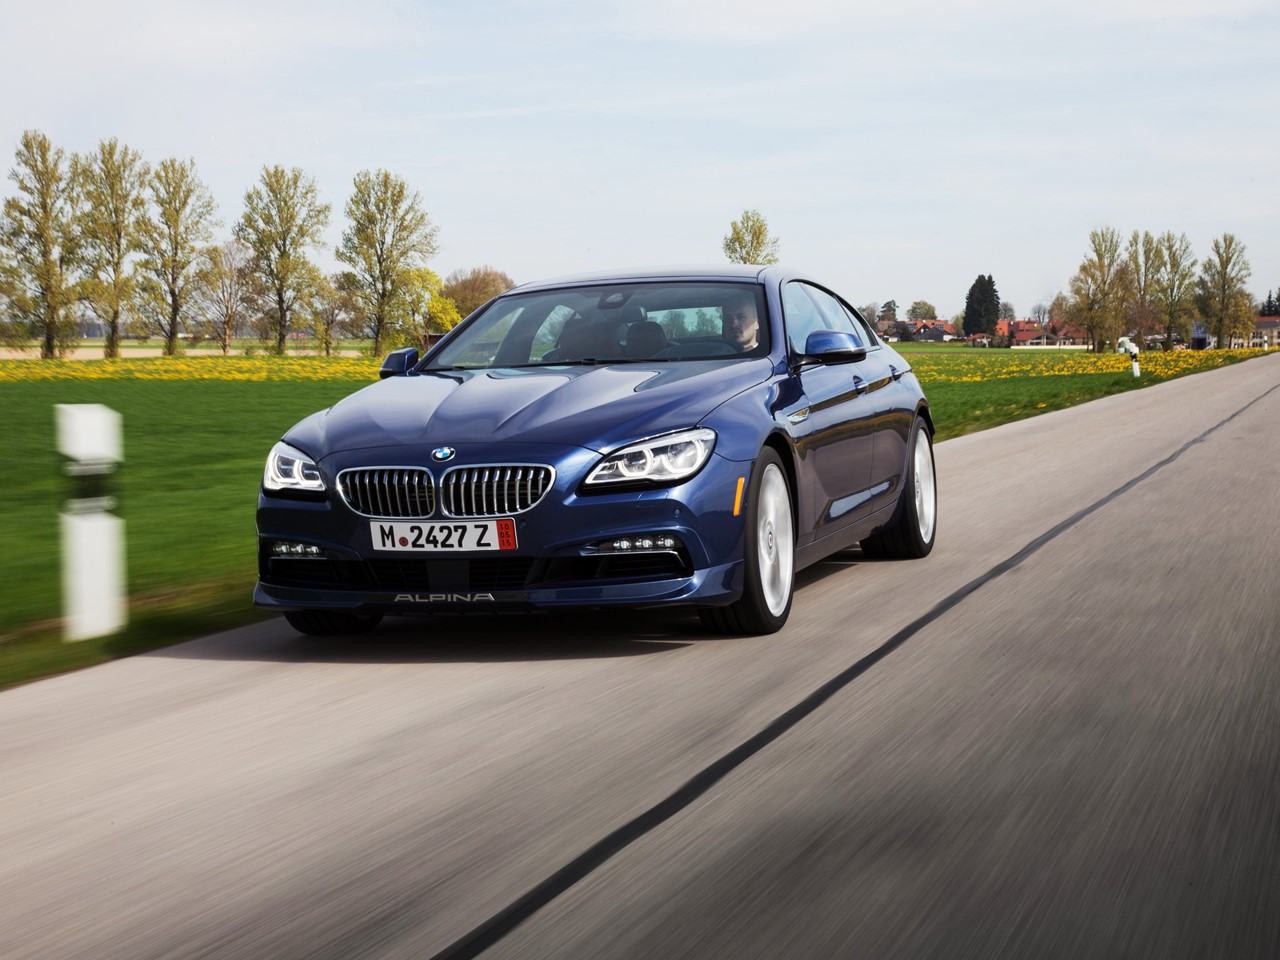 2016 Alpina B6 XDrive Gran Coupe 26 BMW Motorsport